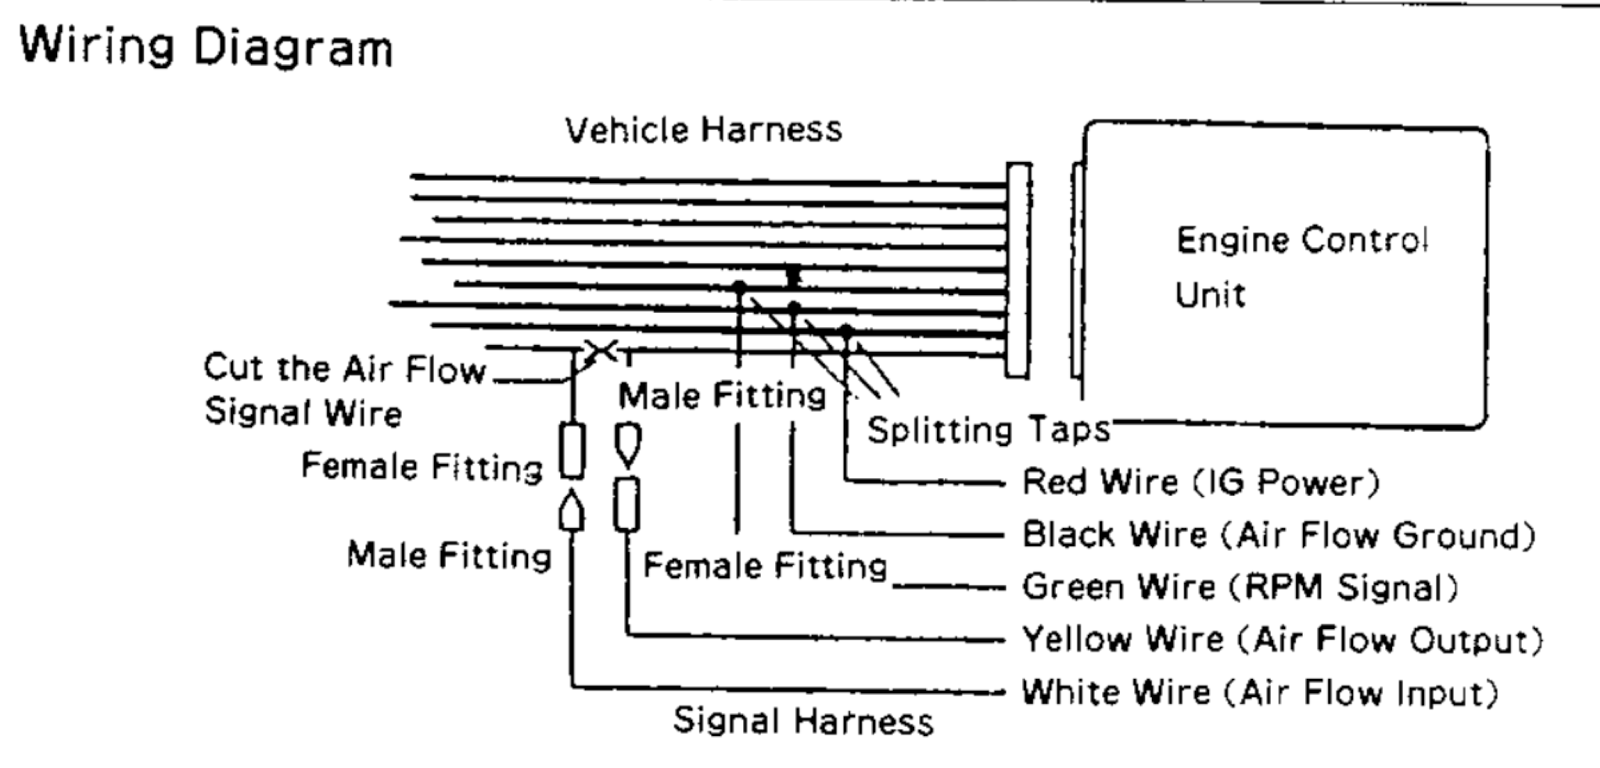 Summary Wiring Diagram By Model Apexi Safc